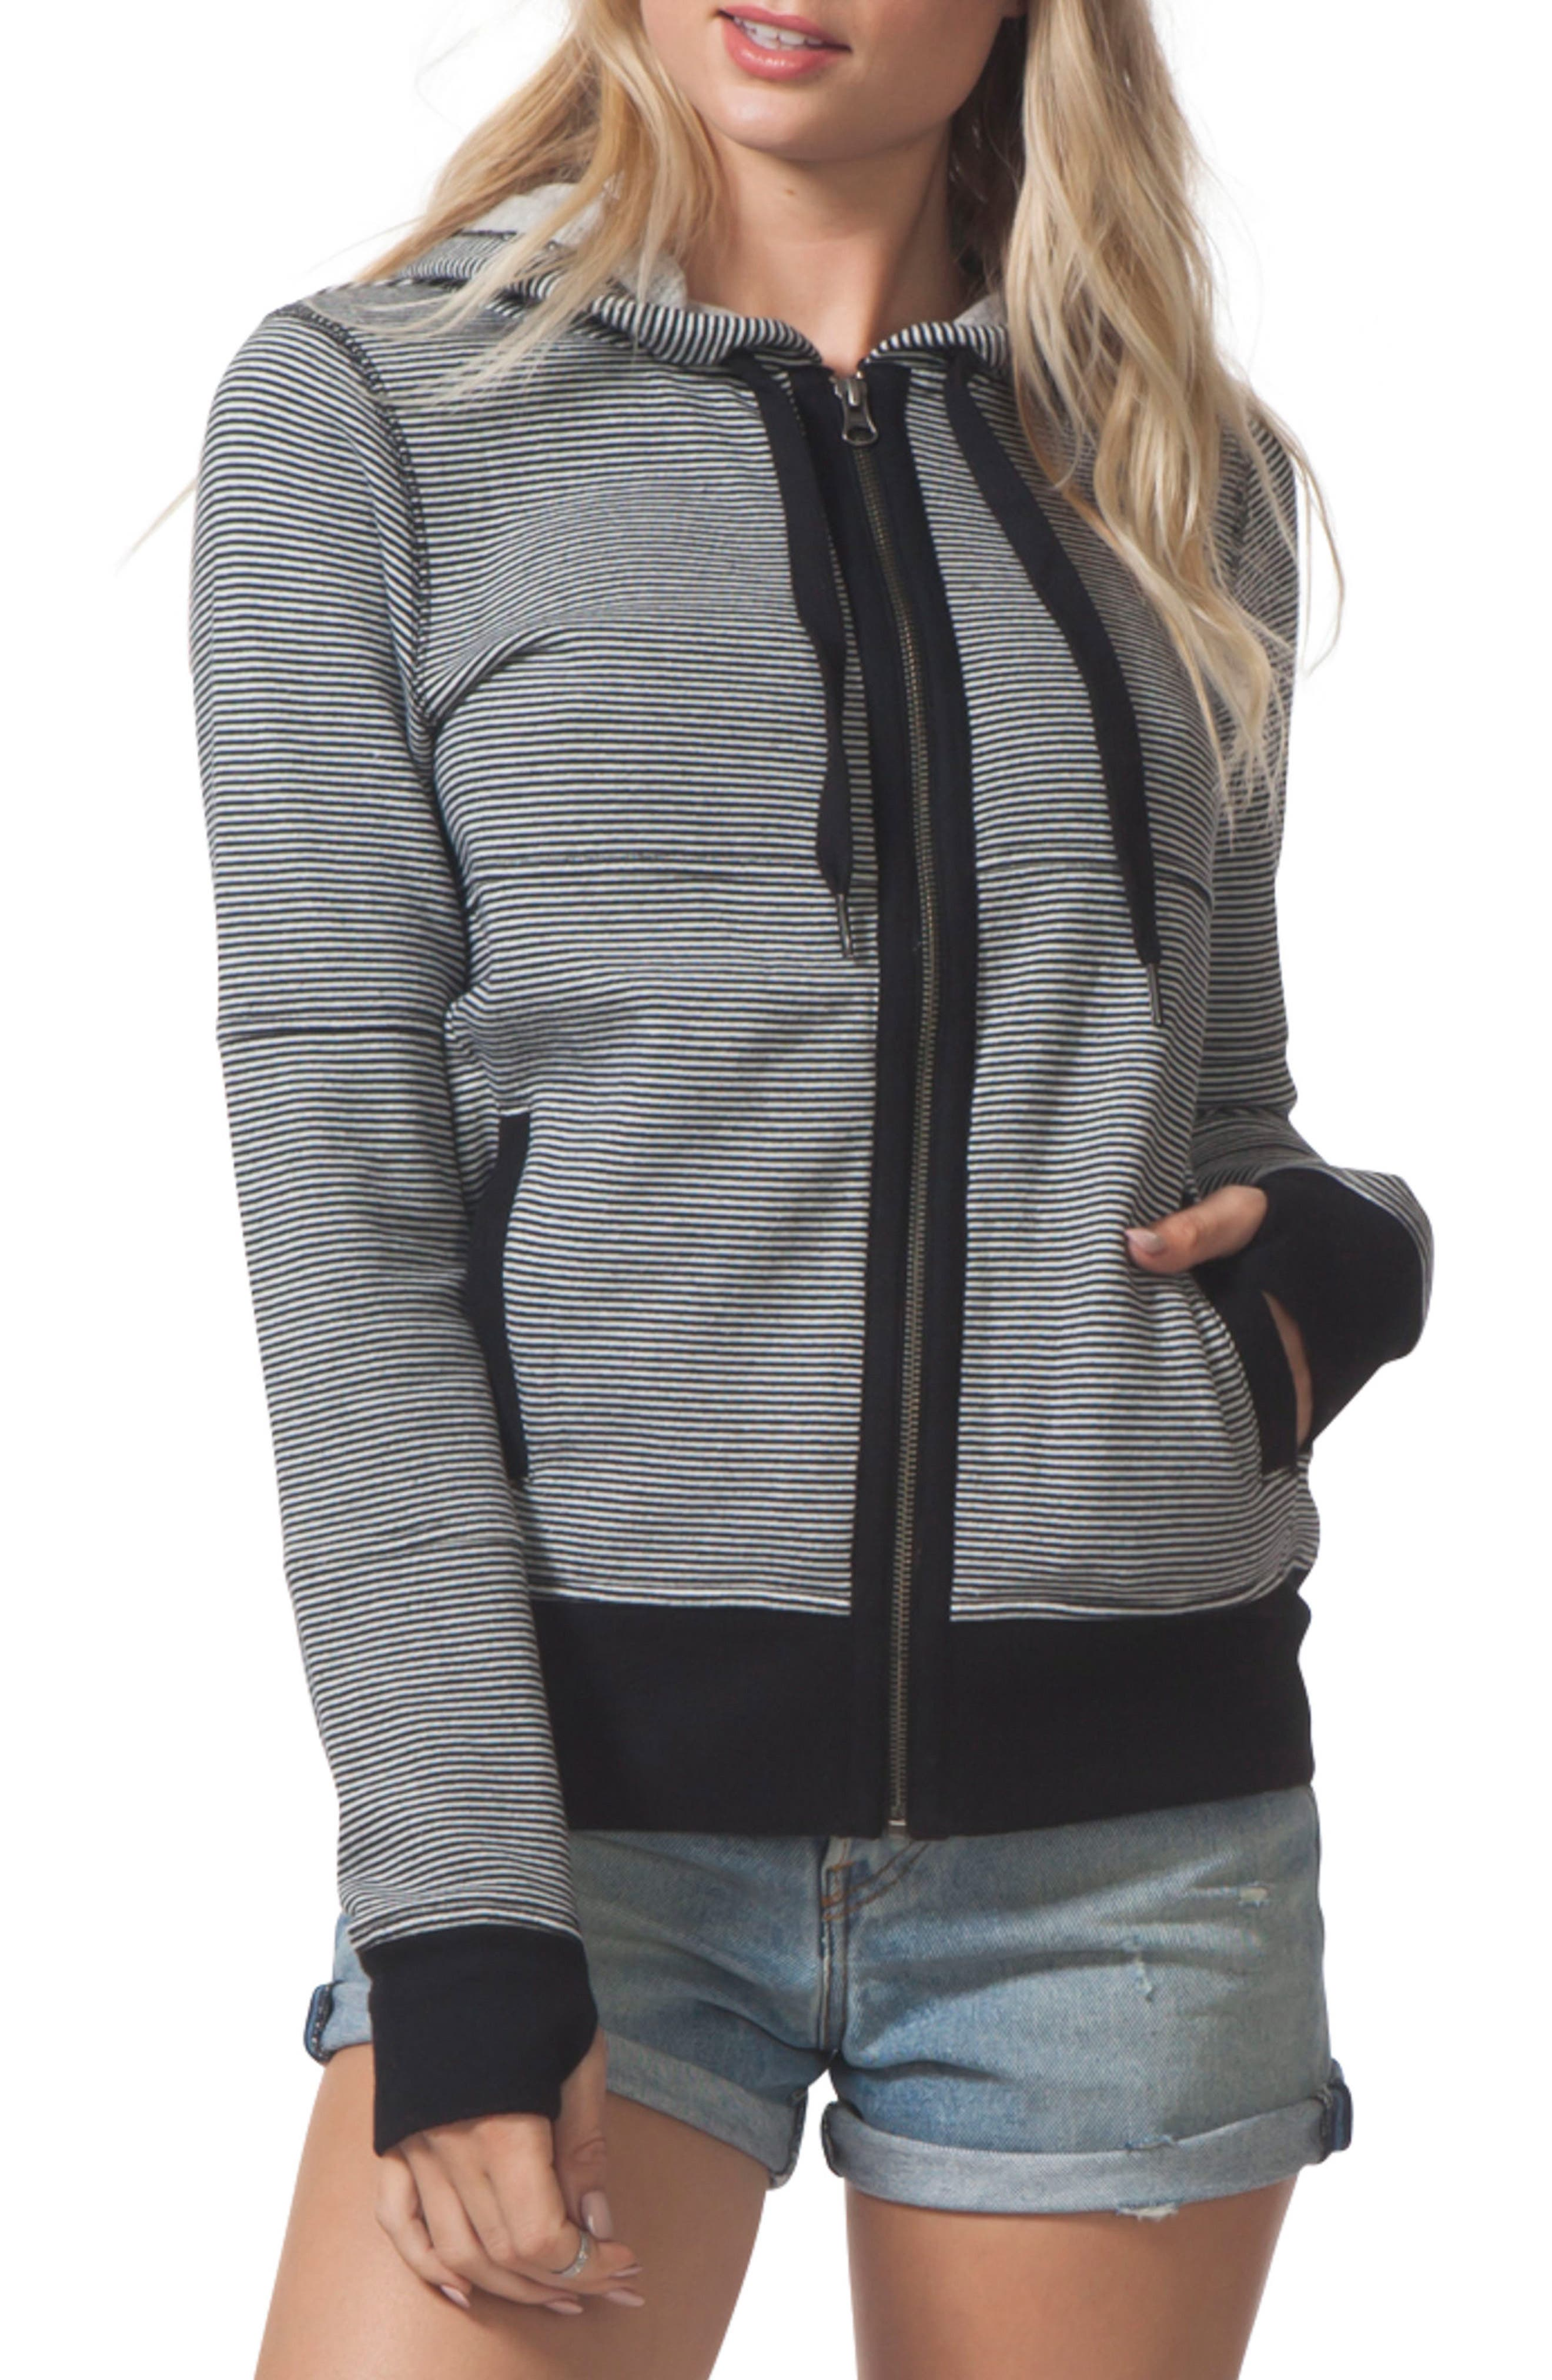 Surf Threads Hoodie,                         Main,                         color, Black/ White